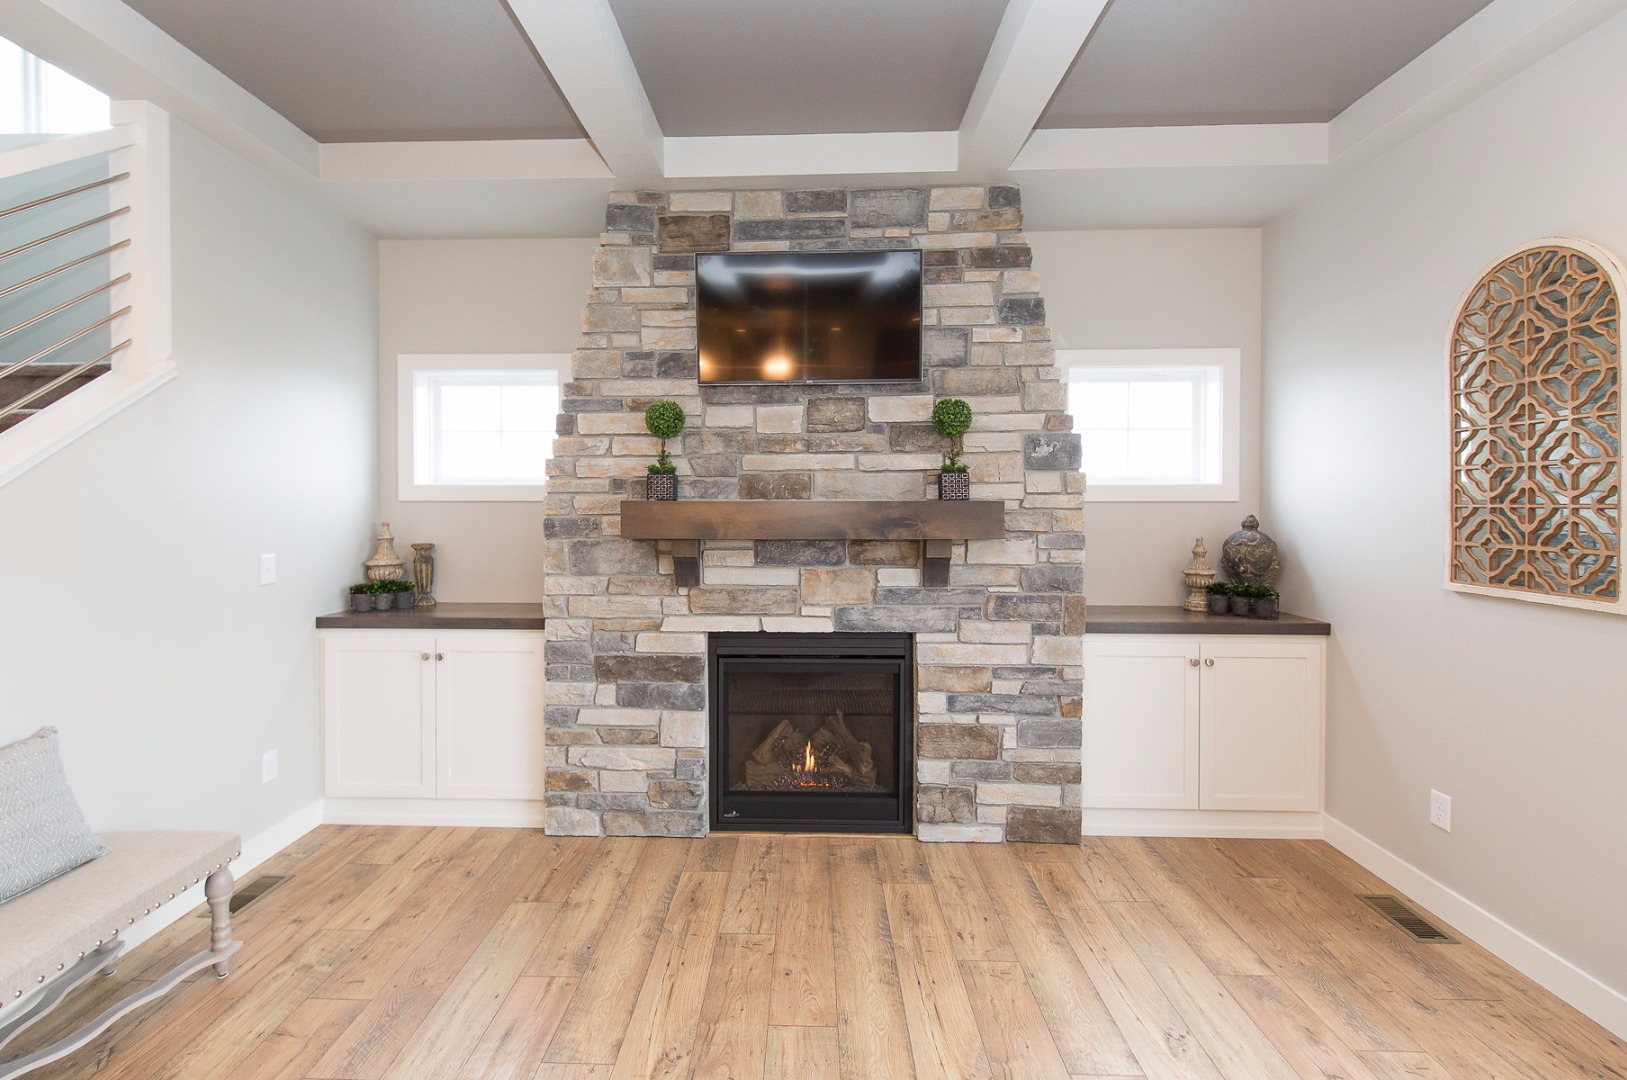 24-fireplace-builtins.jpg